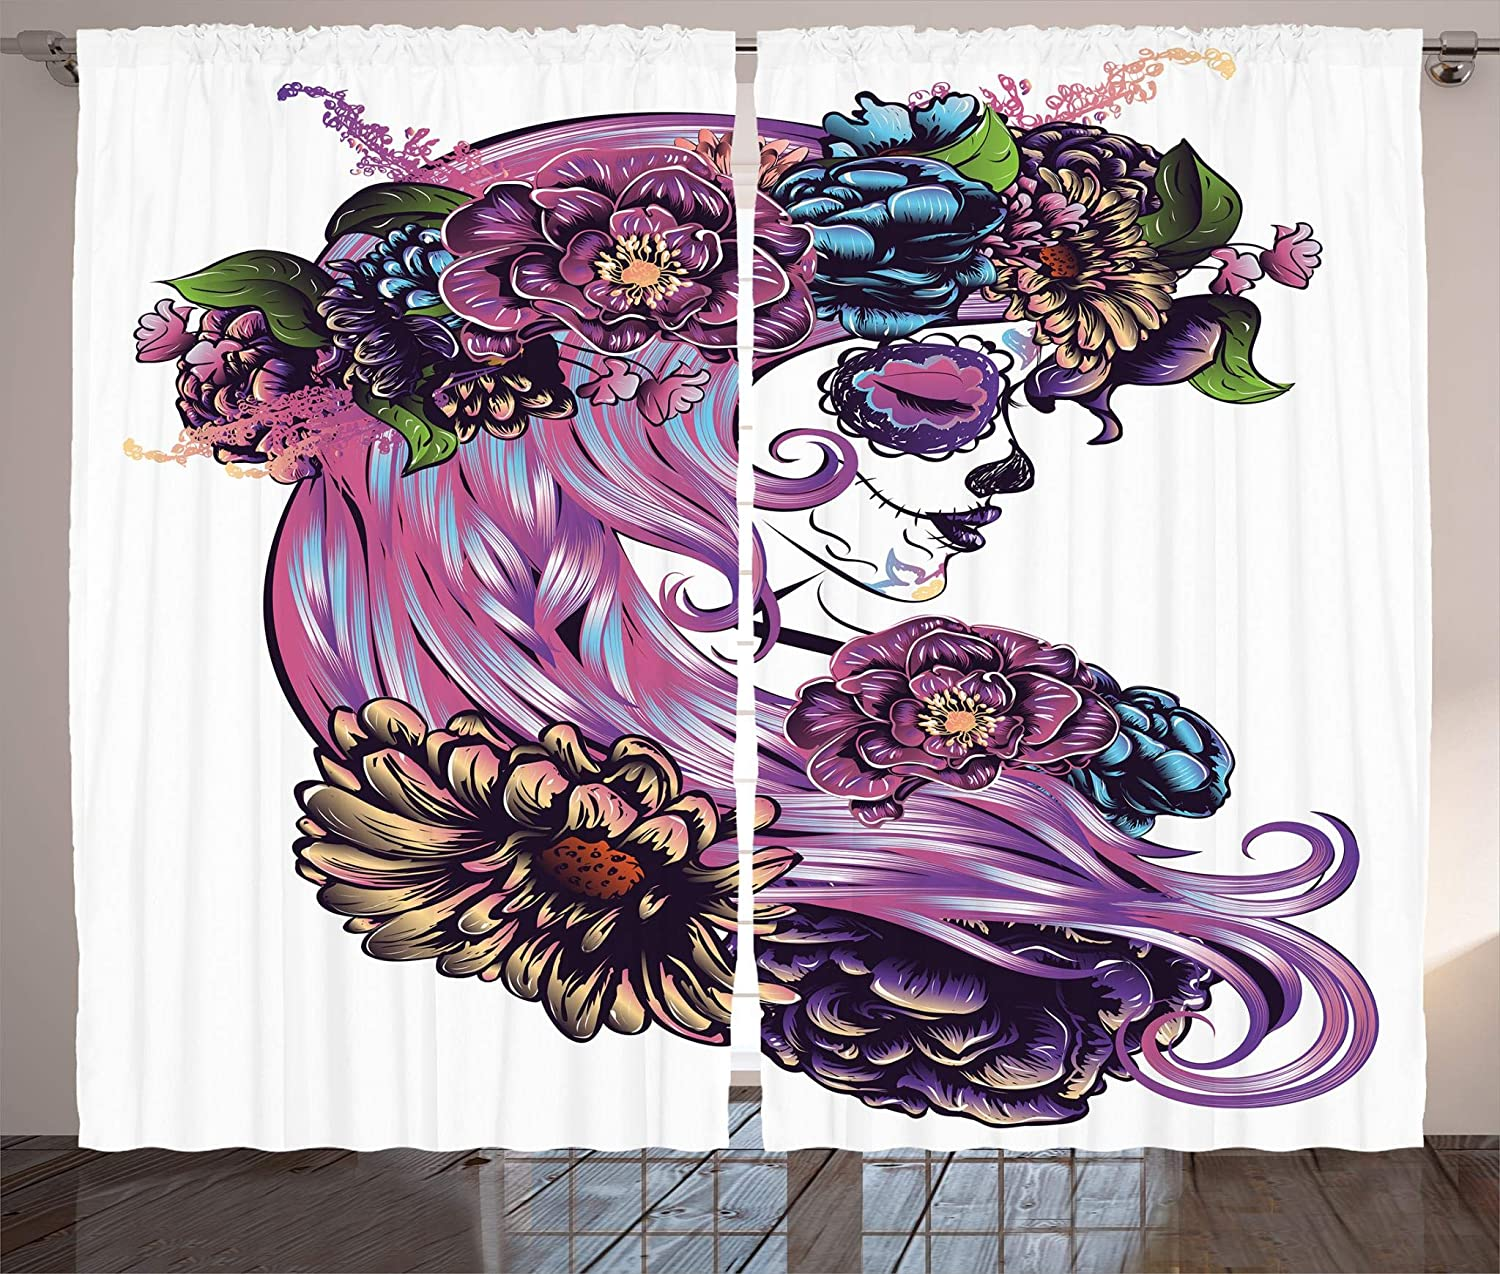 Ambesonne Gothic Decor Collection, Day of the Dead Illustration with Sugar Skull Girl in Decorative Flower Wreath Print, Living Room Bedroom Curtain 2 Panels Set, 108 X 84 Inches, bluee Purple Pink